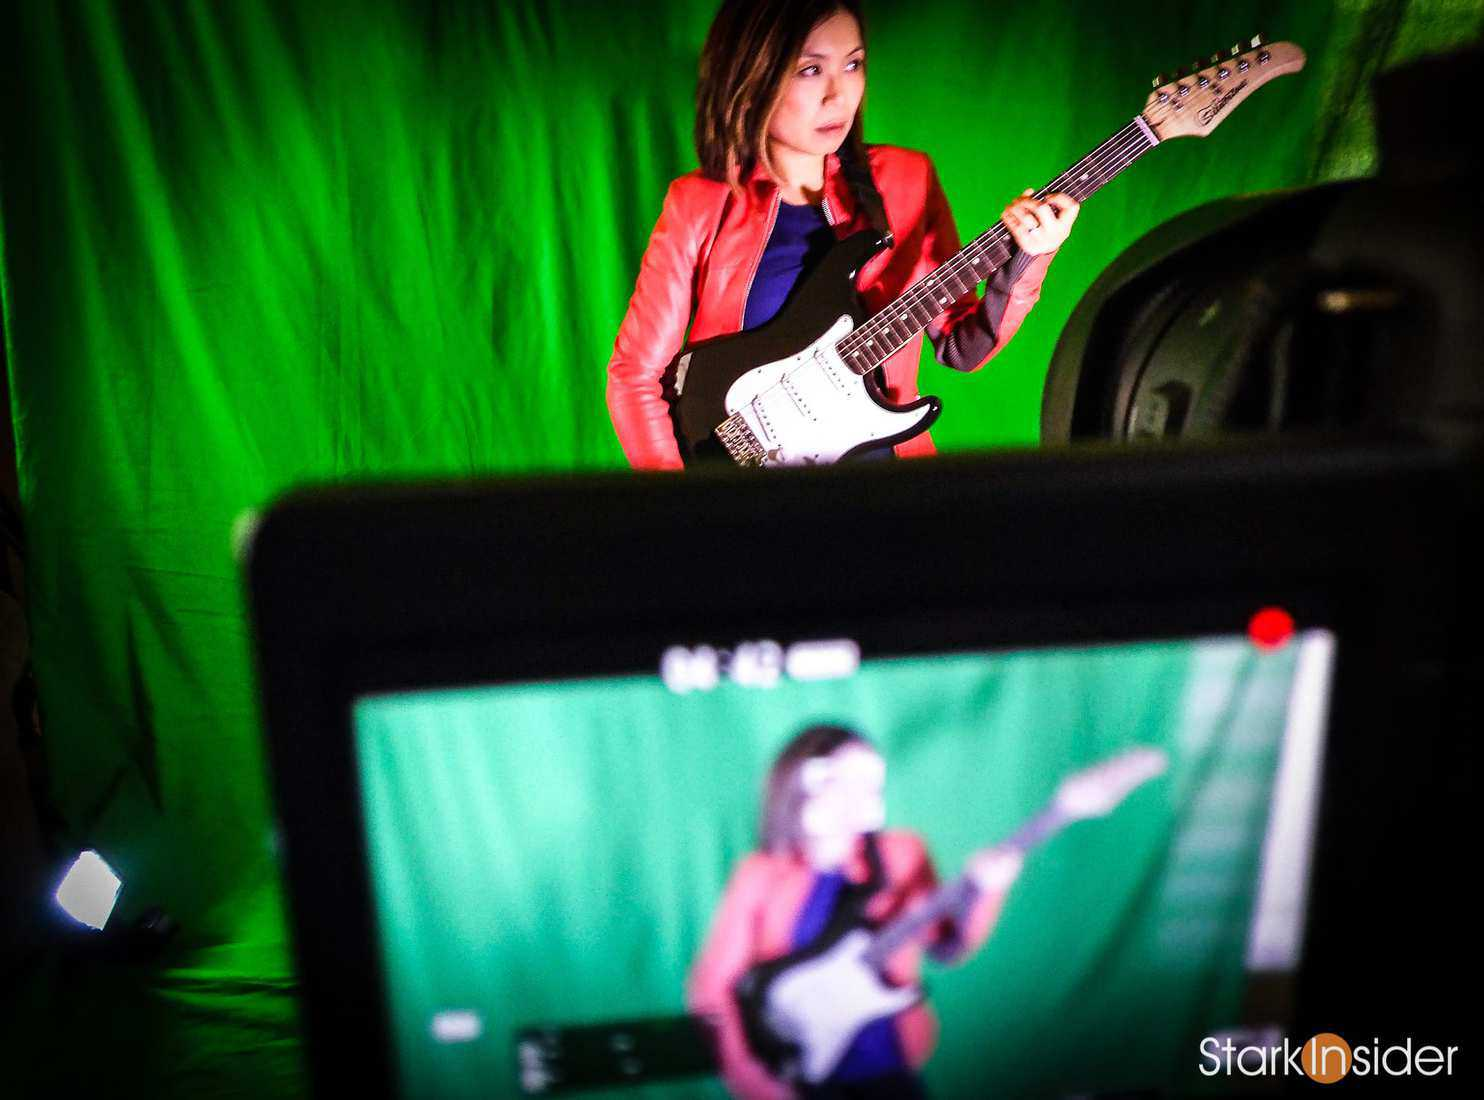 Loni Stark Green Screen for Stark Insider Video